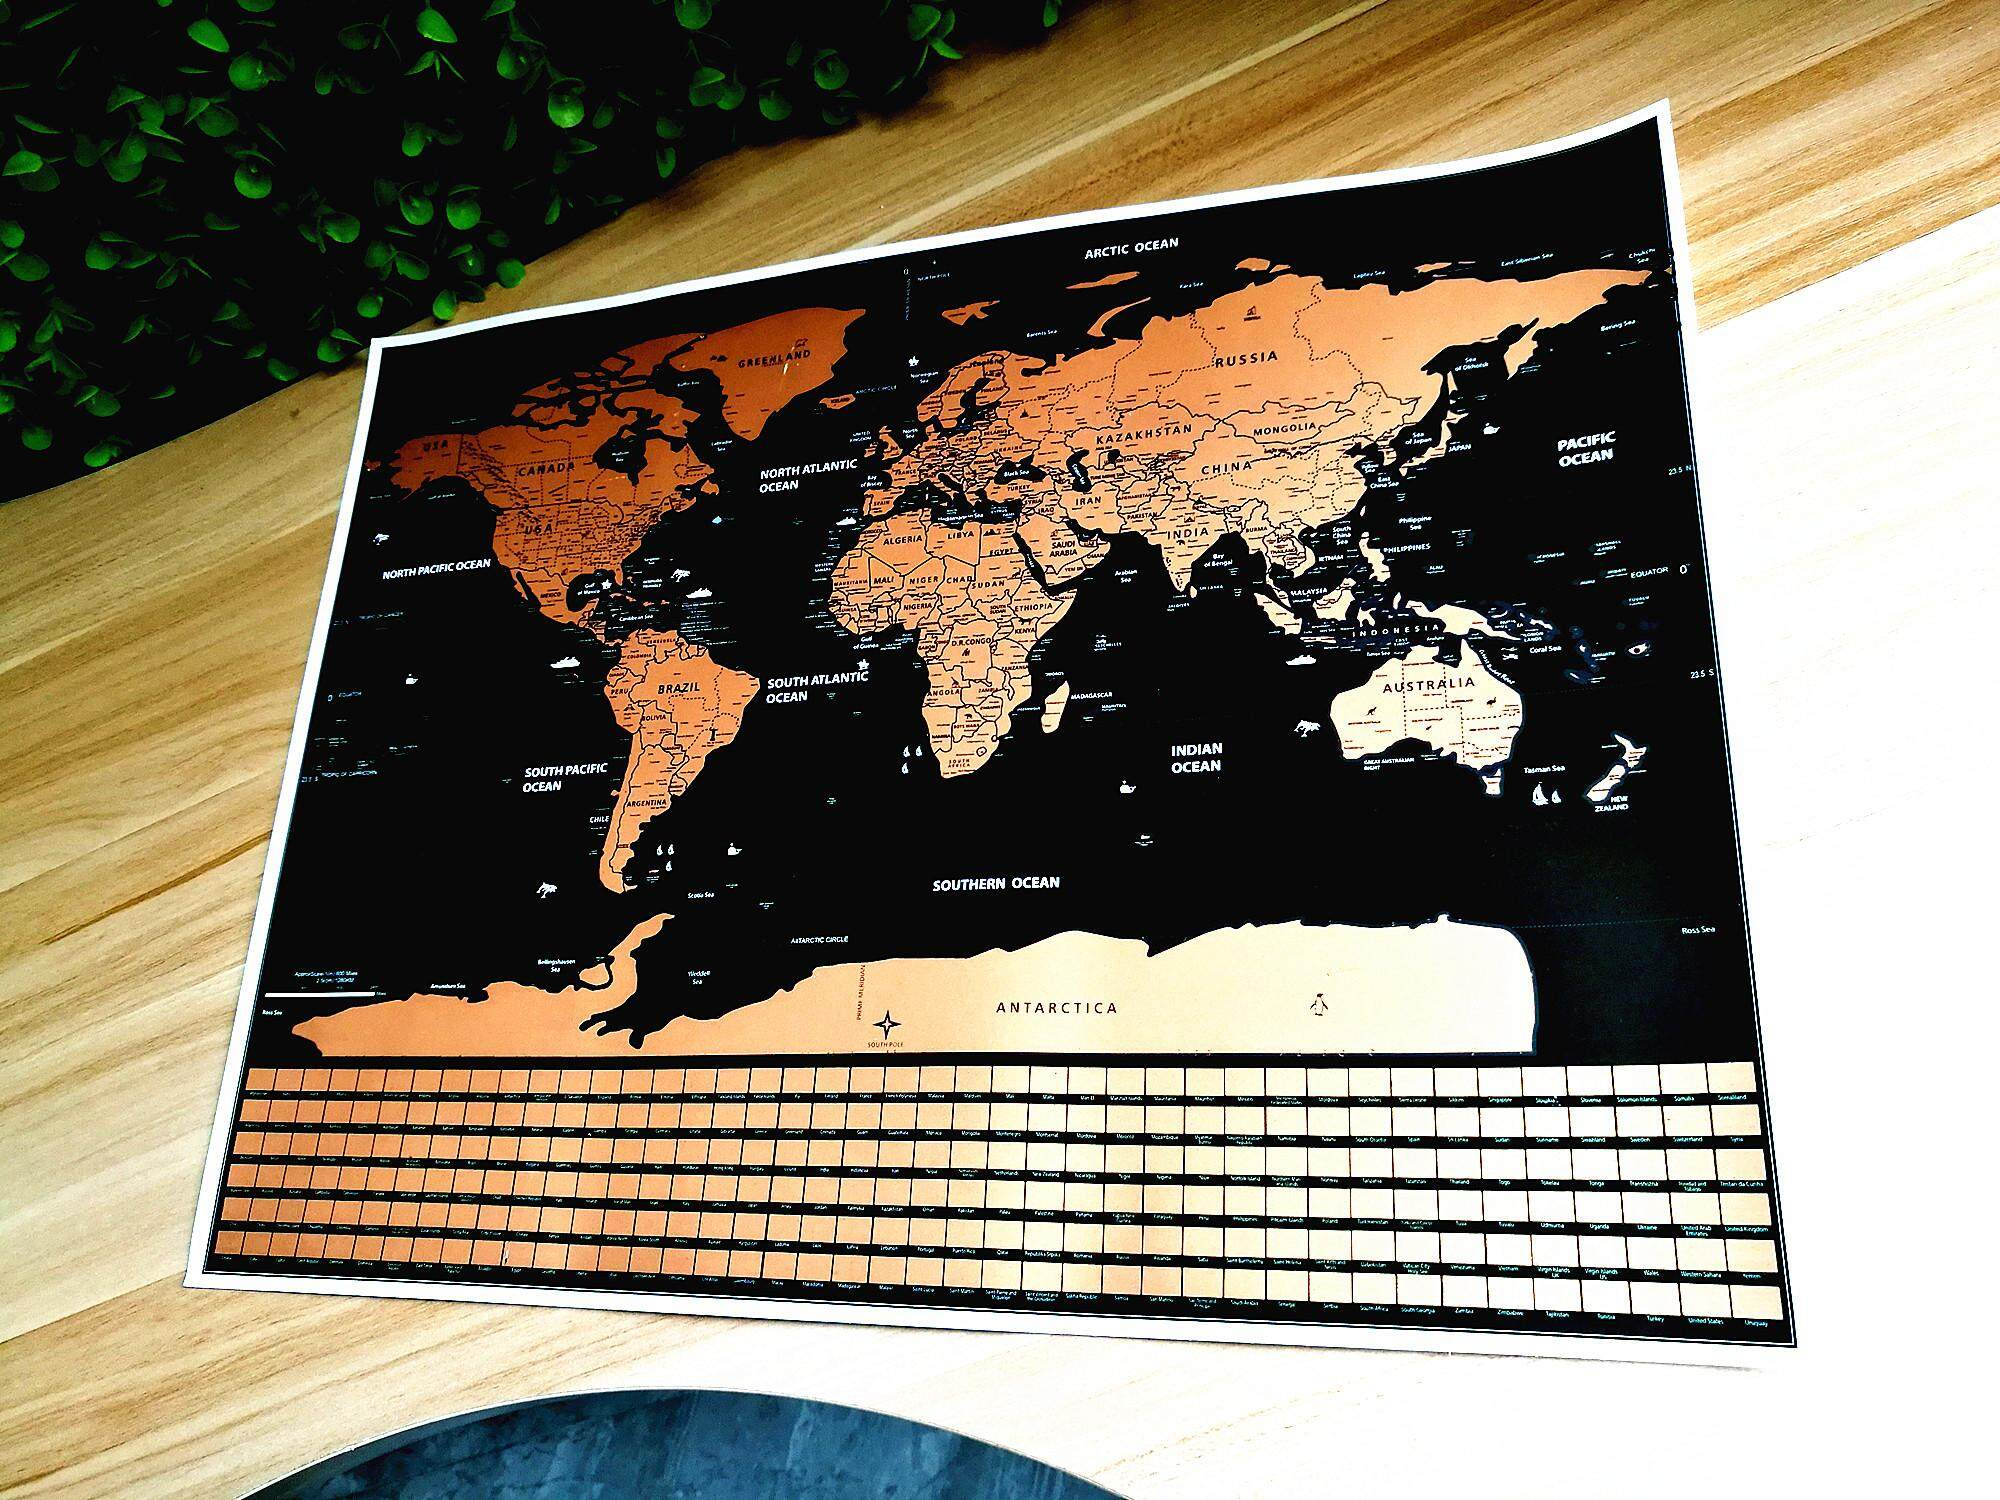 Personalized Black Scratch Map 58X83 CM Deluxe Travel Edition Scratch Off World Map Poster Wall Stickers